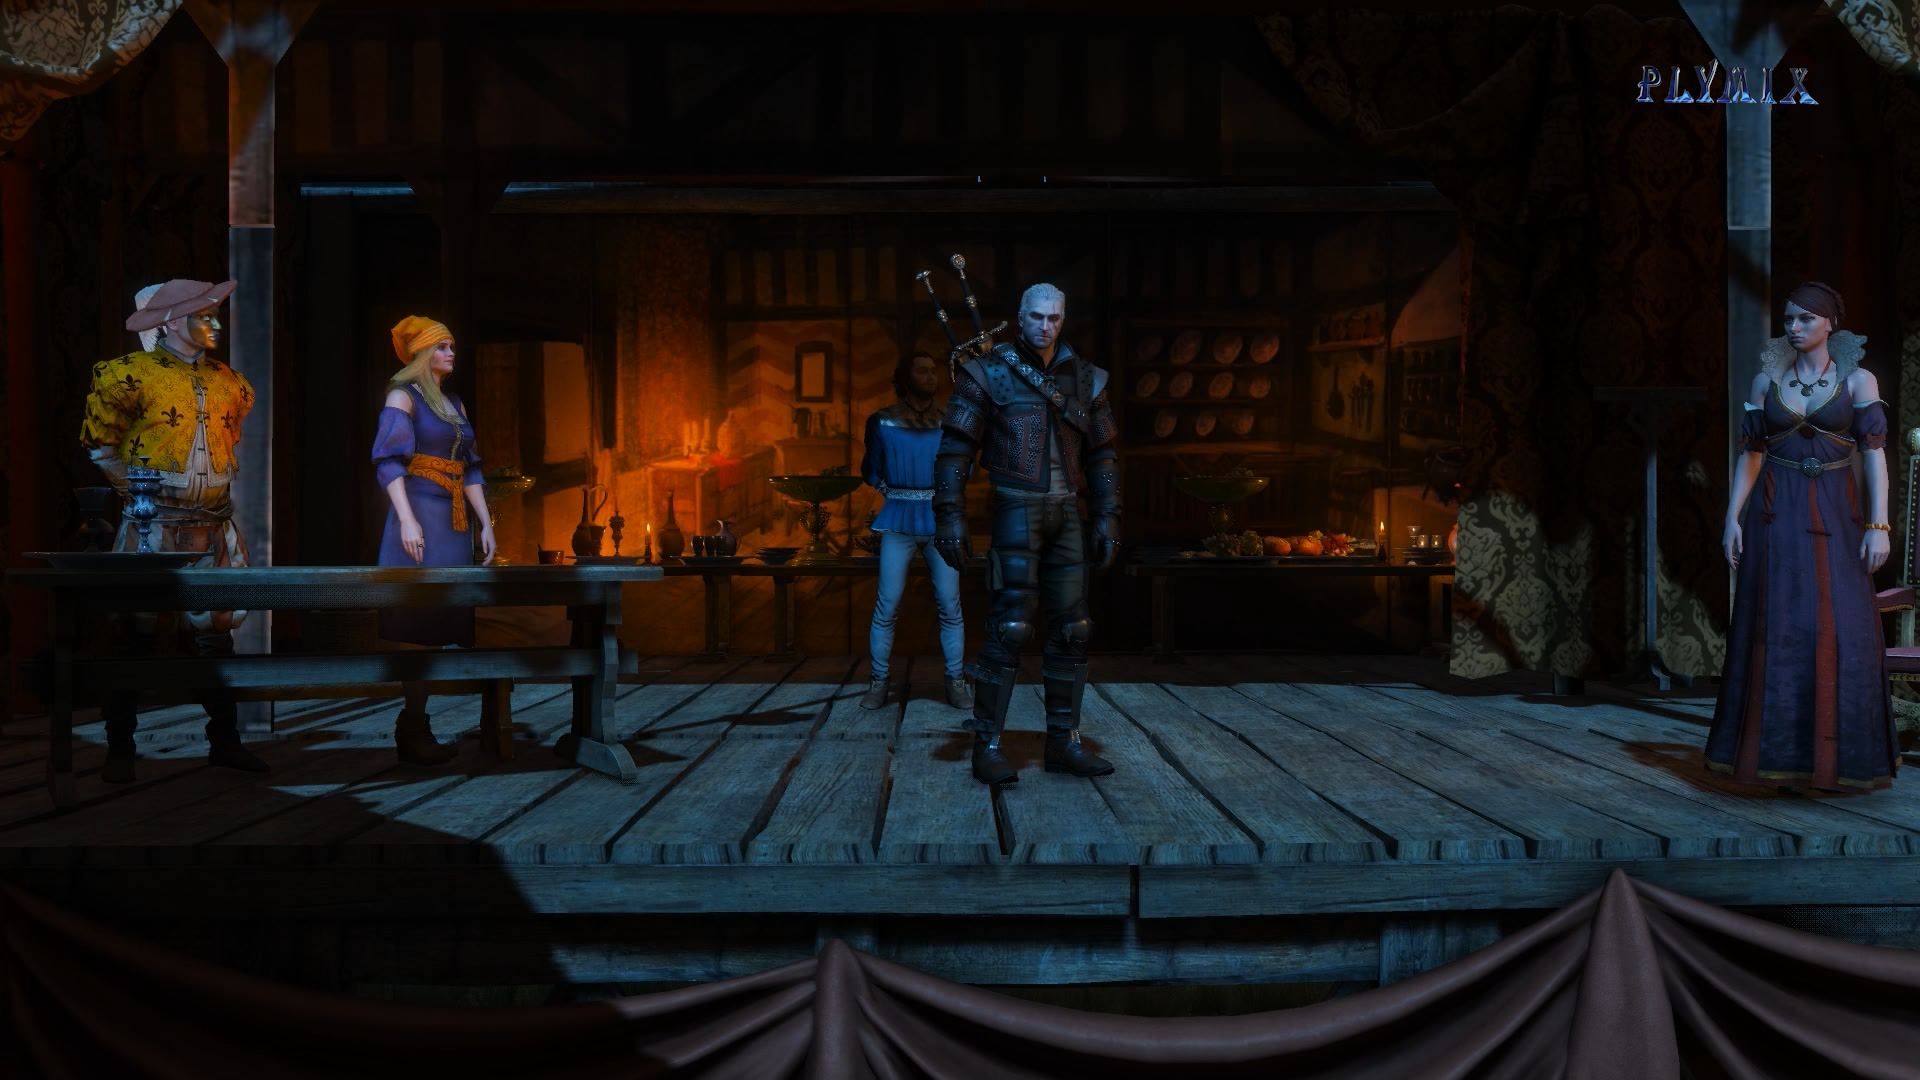 17 театр.png - Witcher 3: Wild Hunt, the